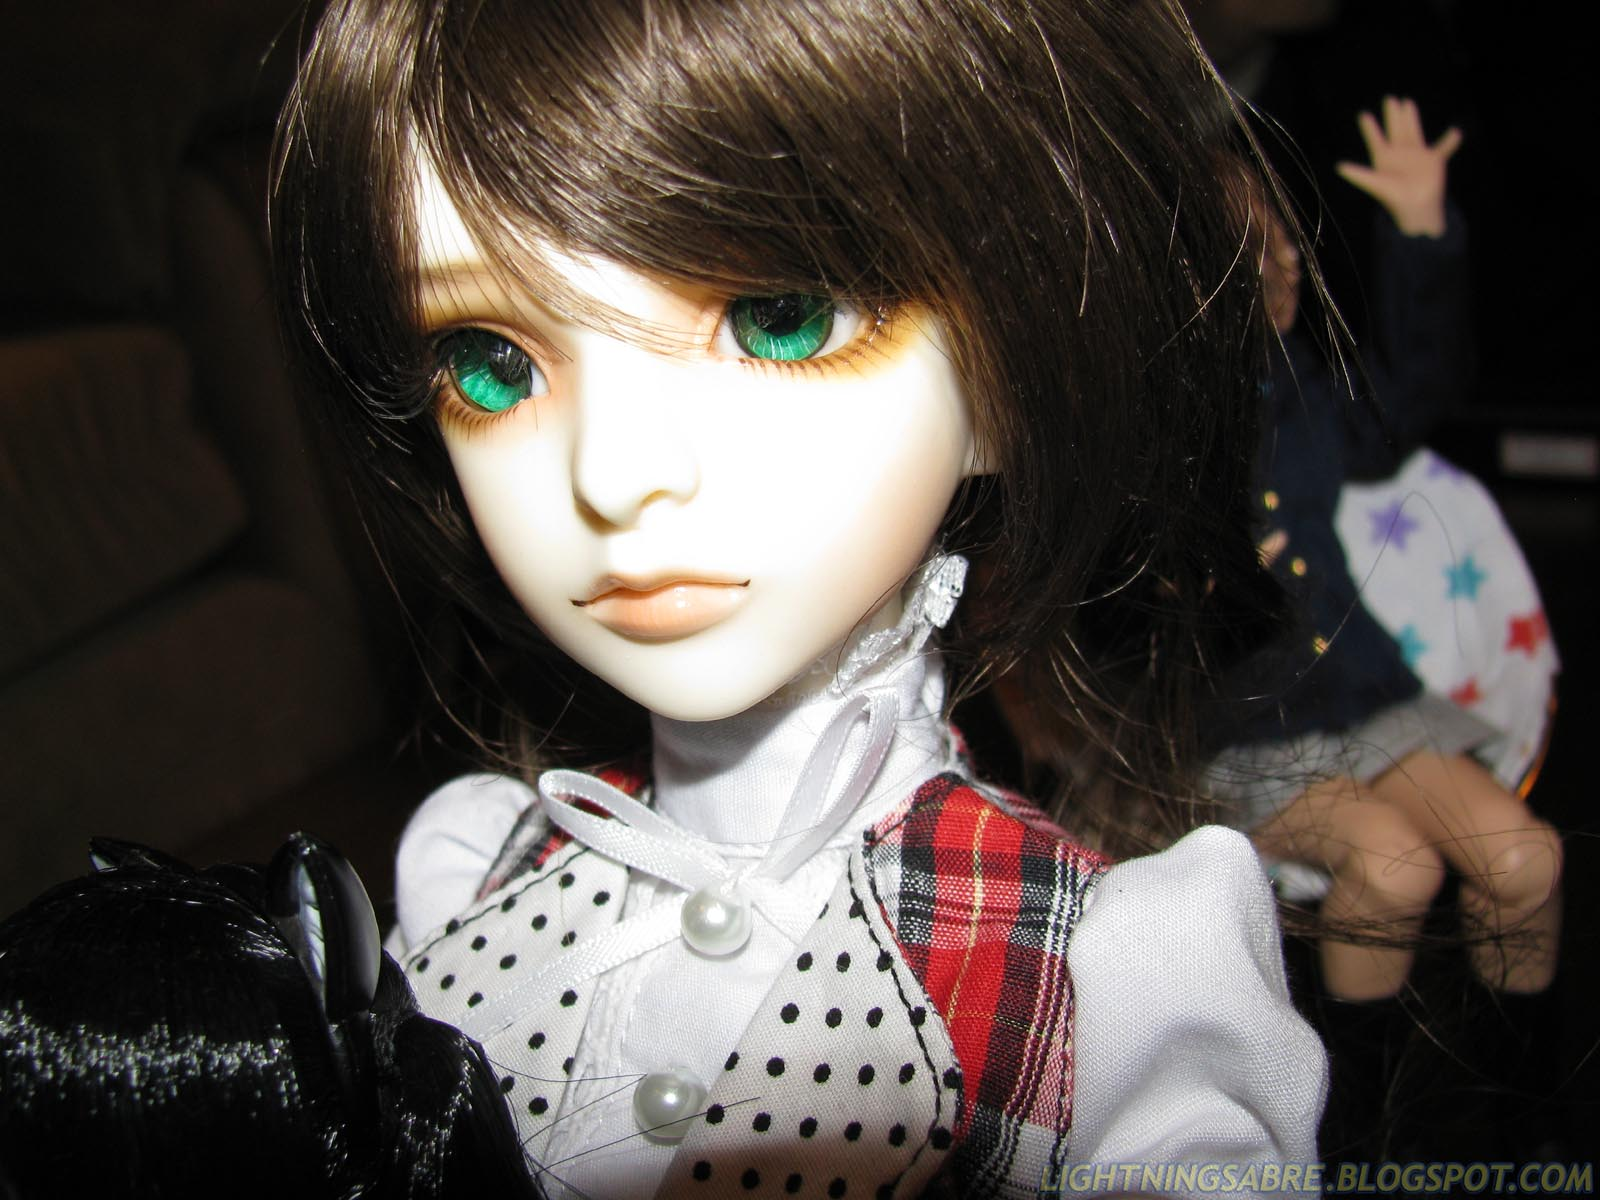 Japanese Anime Dolls http://lightningsabre.blogspot.com/2011/04/mini-animedoll-meet-03122011.html